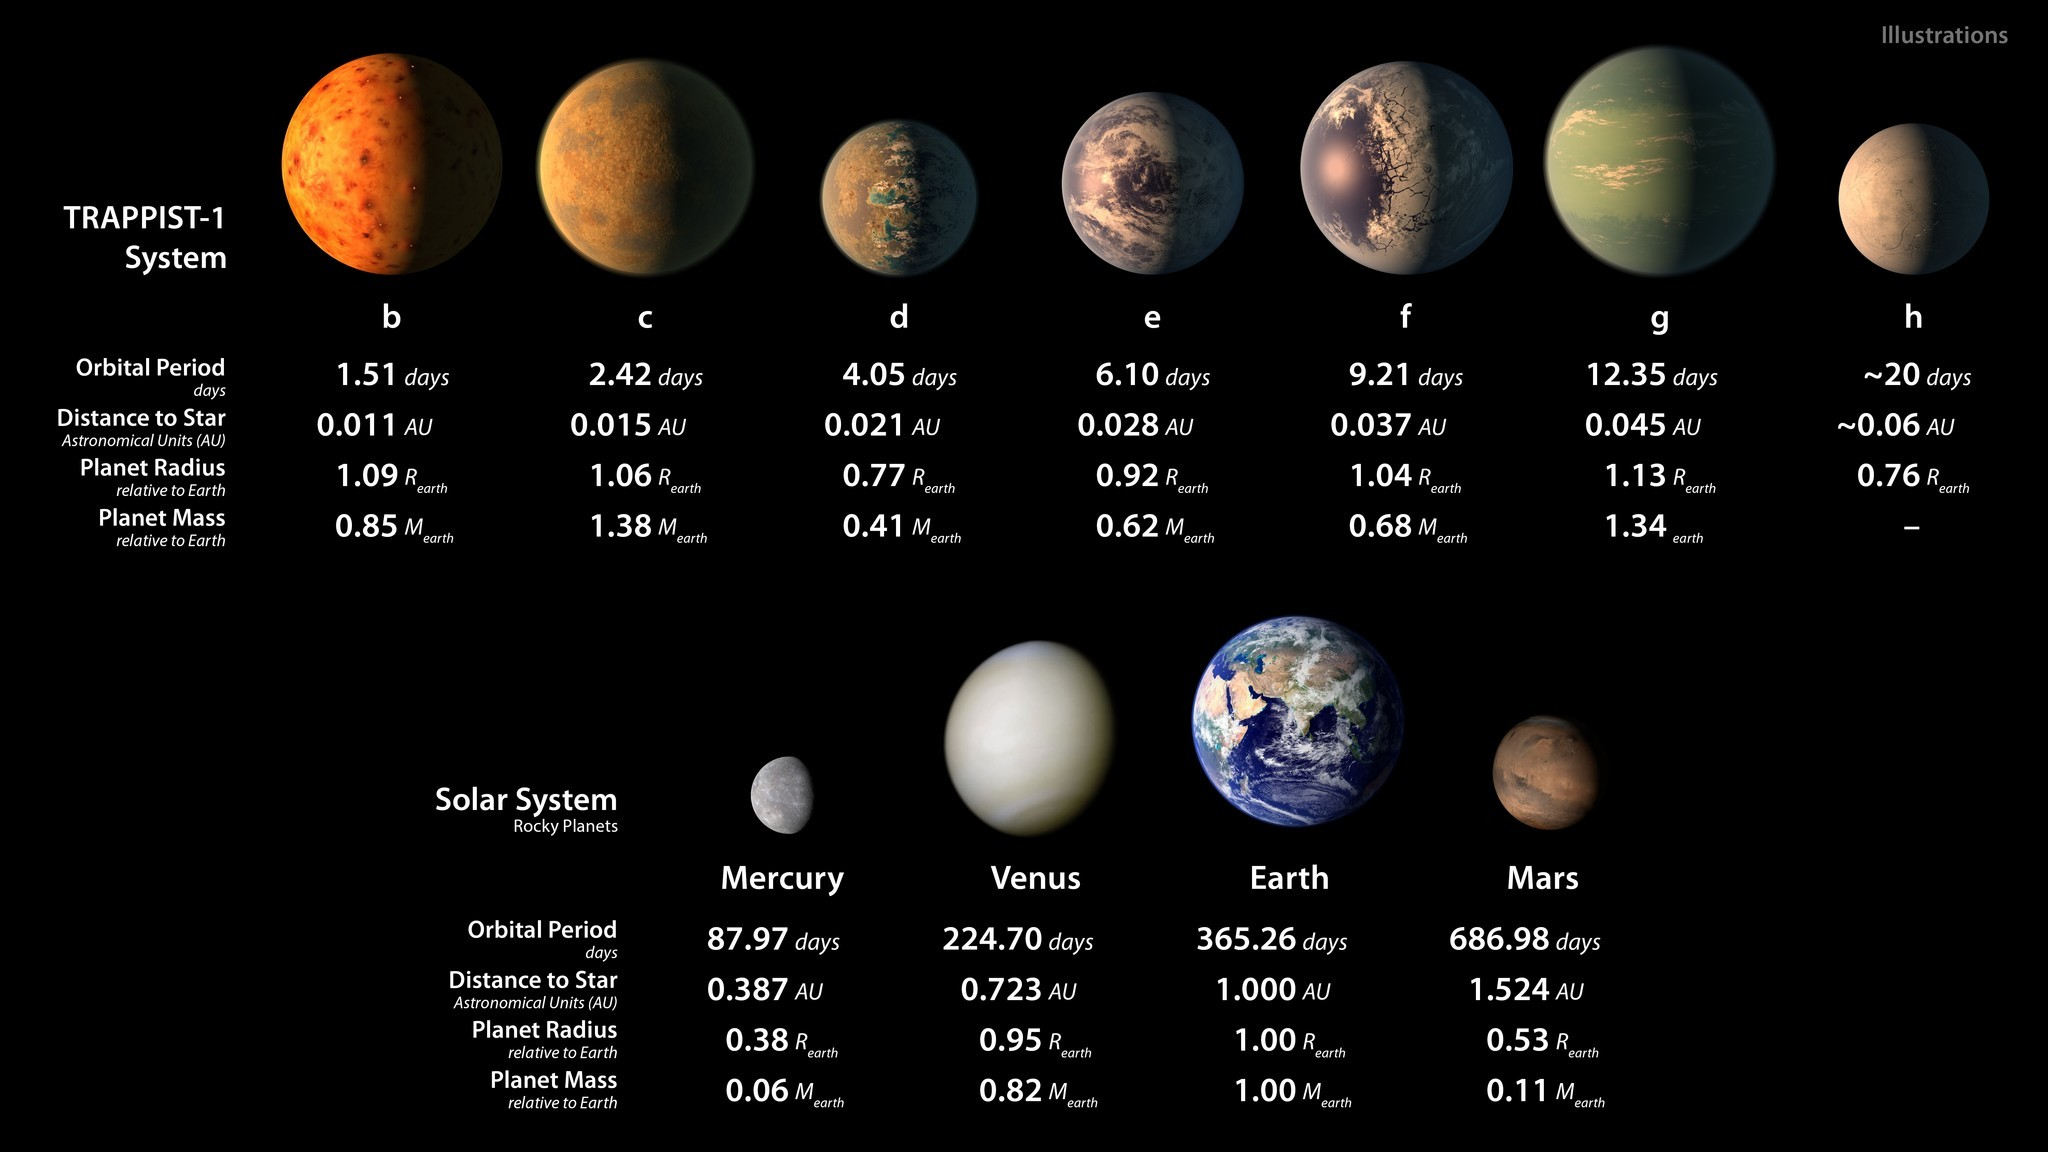 This chart shows, on the top row, artist conceptions of the seven planets of TRAPPIST-1 with their orbital periods, distances from their star, and radii and masses as compared to those of Earth. The bottom row shows data about Mercury, Venus, Earth and Mars.